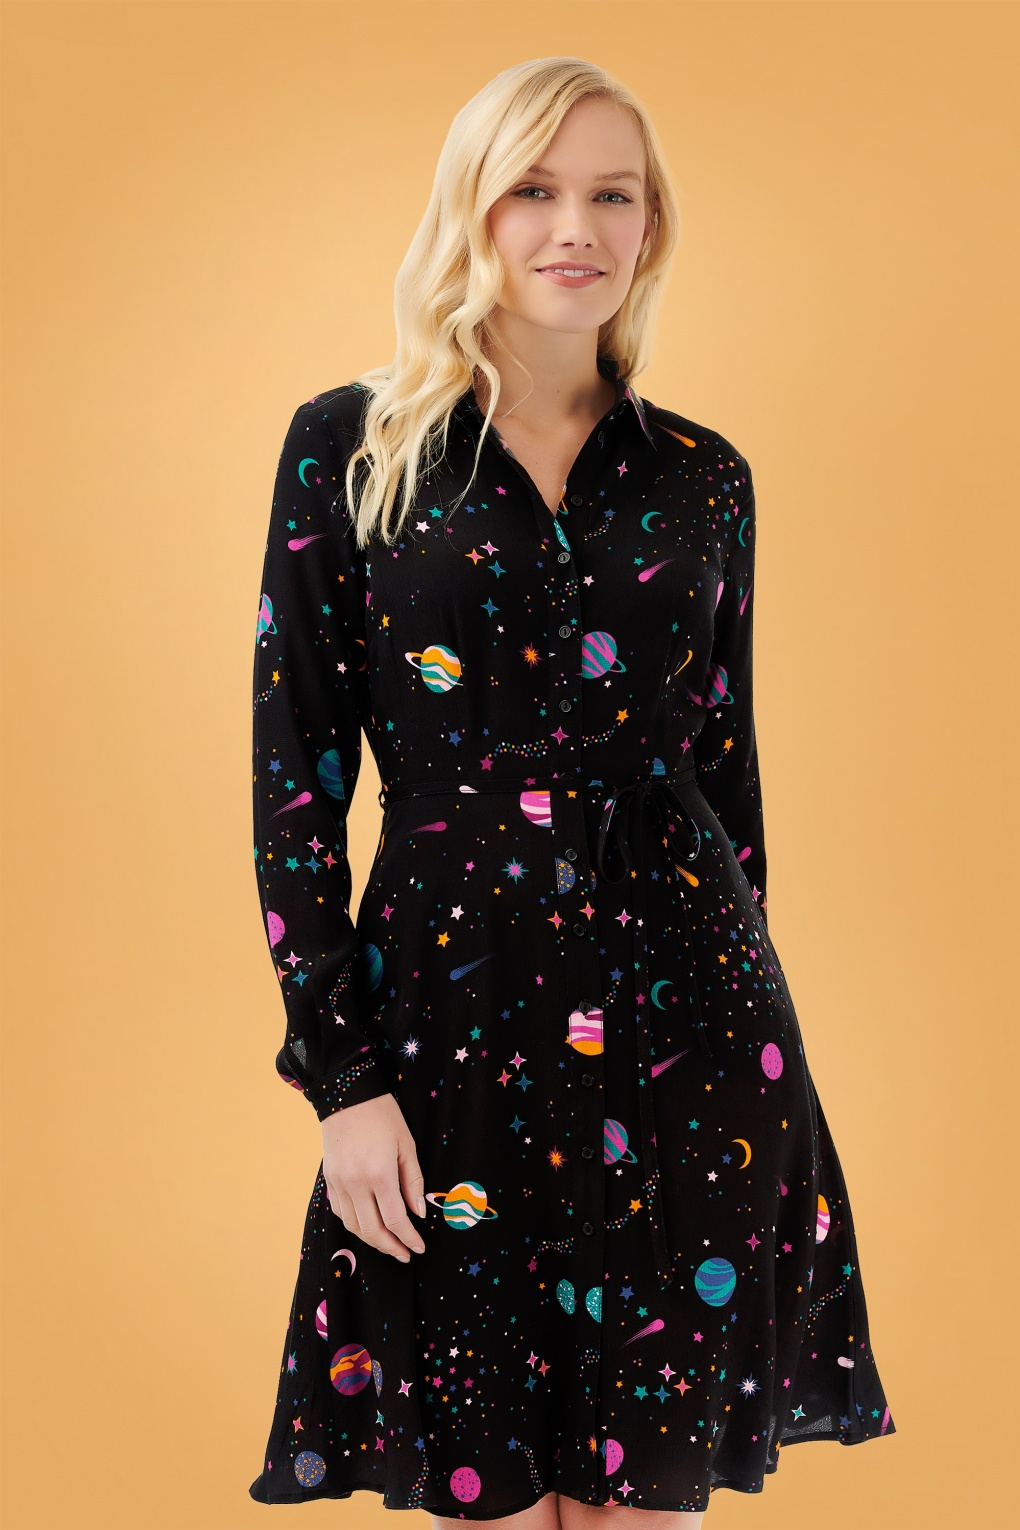 60s Dresses | 1960s Dresses Mod, Mini, Hippie 60s Zadie Cyber Candy Shirt Dress in Black £76.42 AT vintagedancer.com